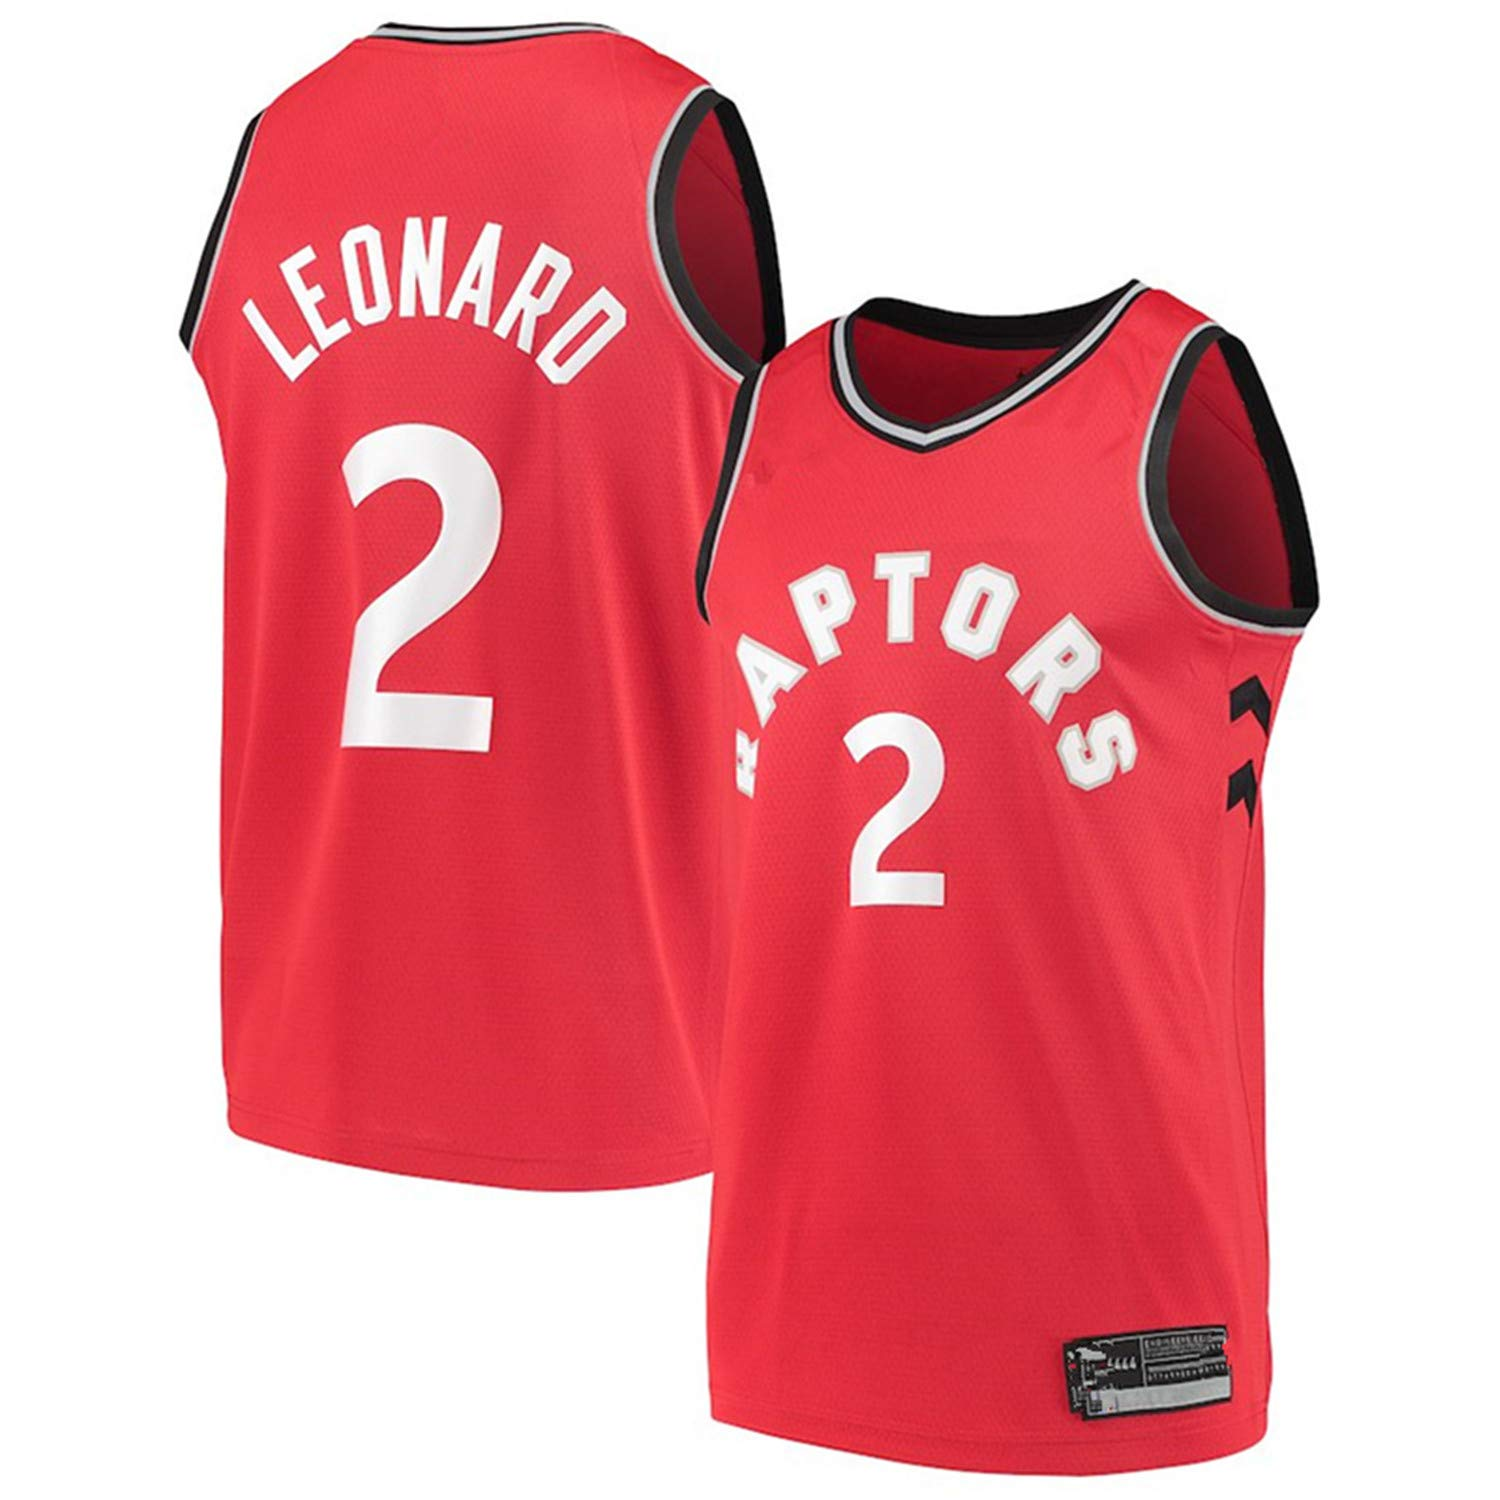 finest selection a794a c2cee Get your Toronto Raptors gear now | Shopper Army